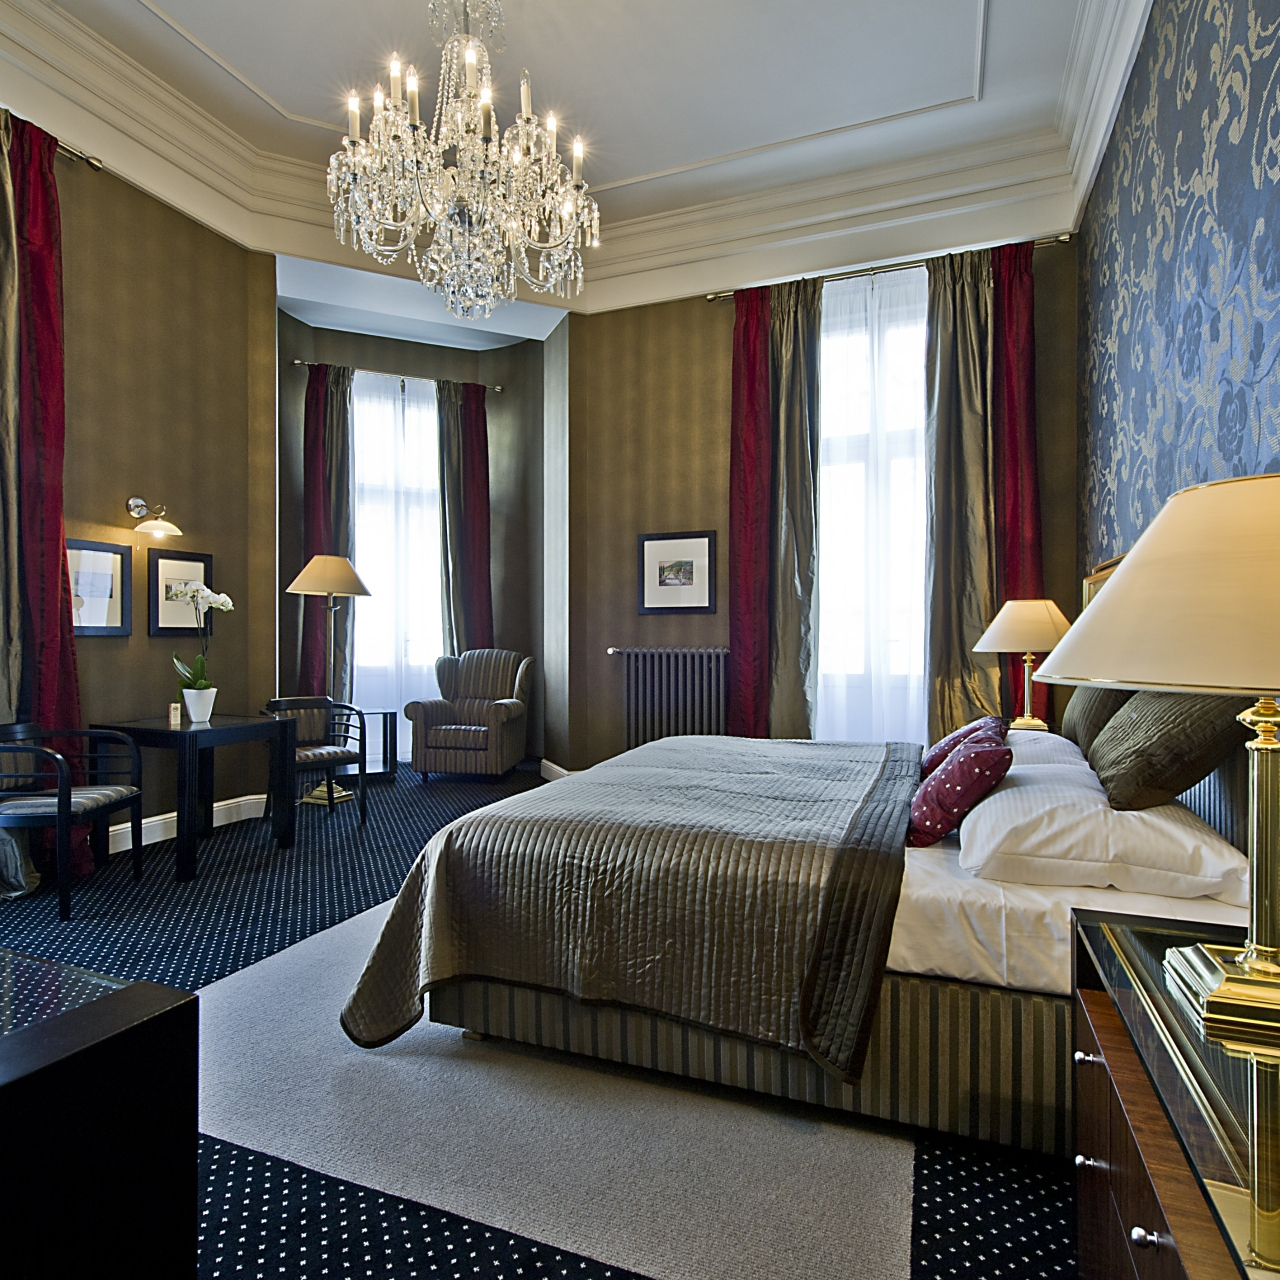 Grandhotel Pupp Czech Republic At Hrs With Free Services